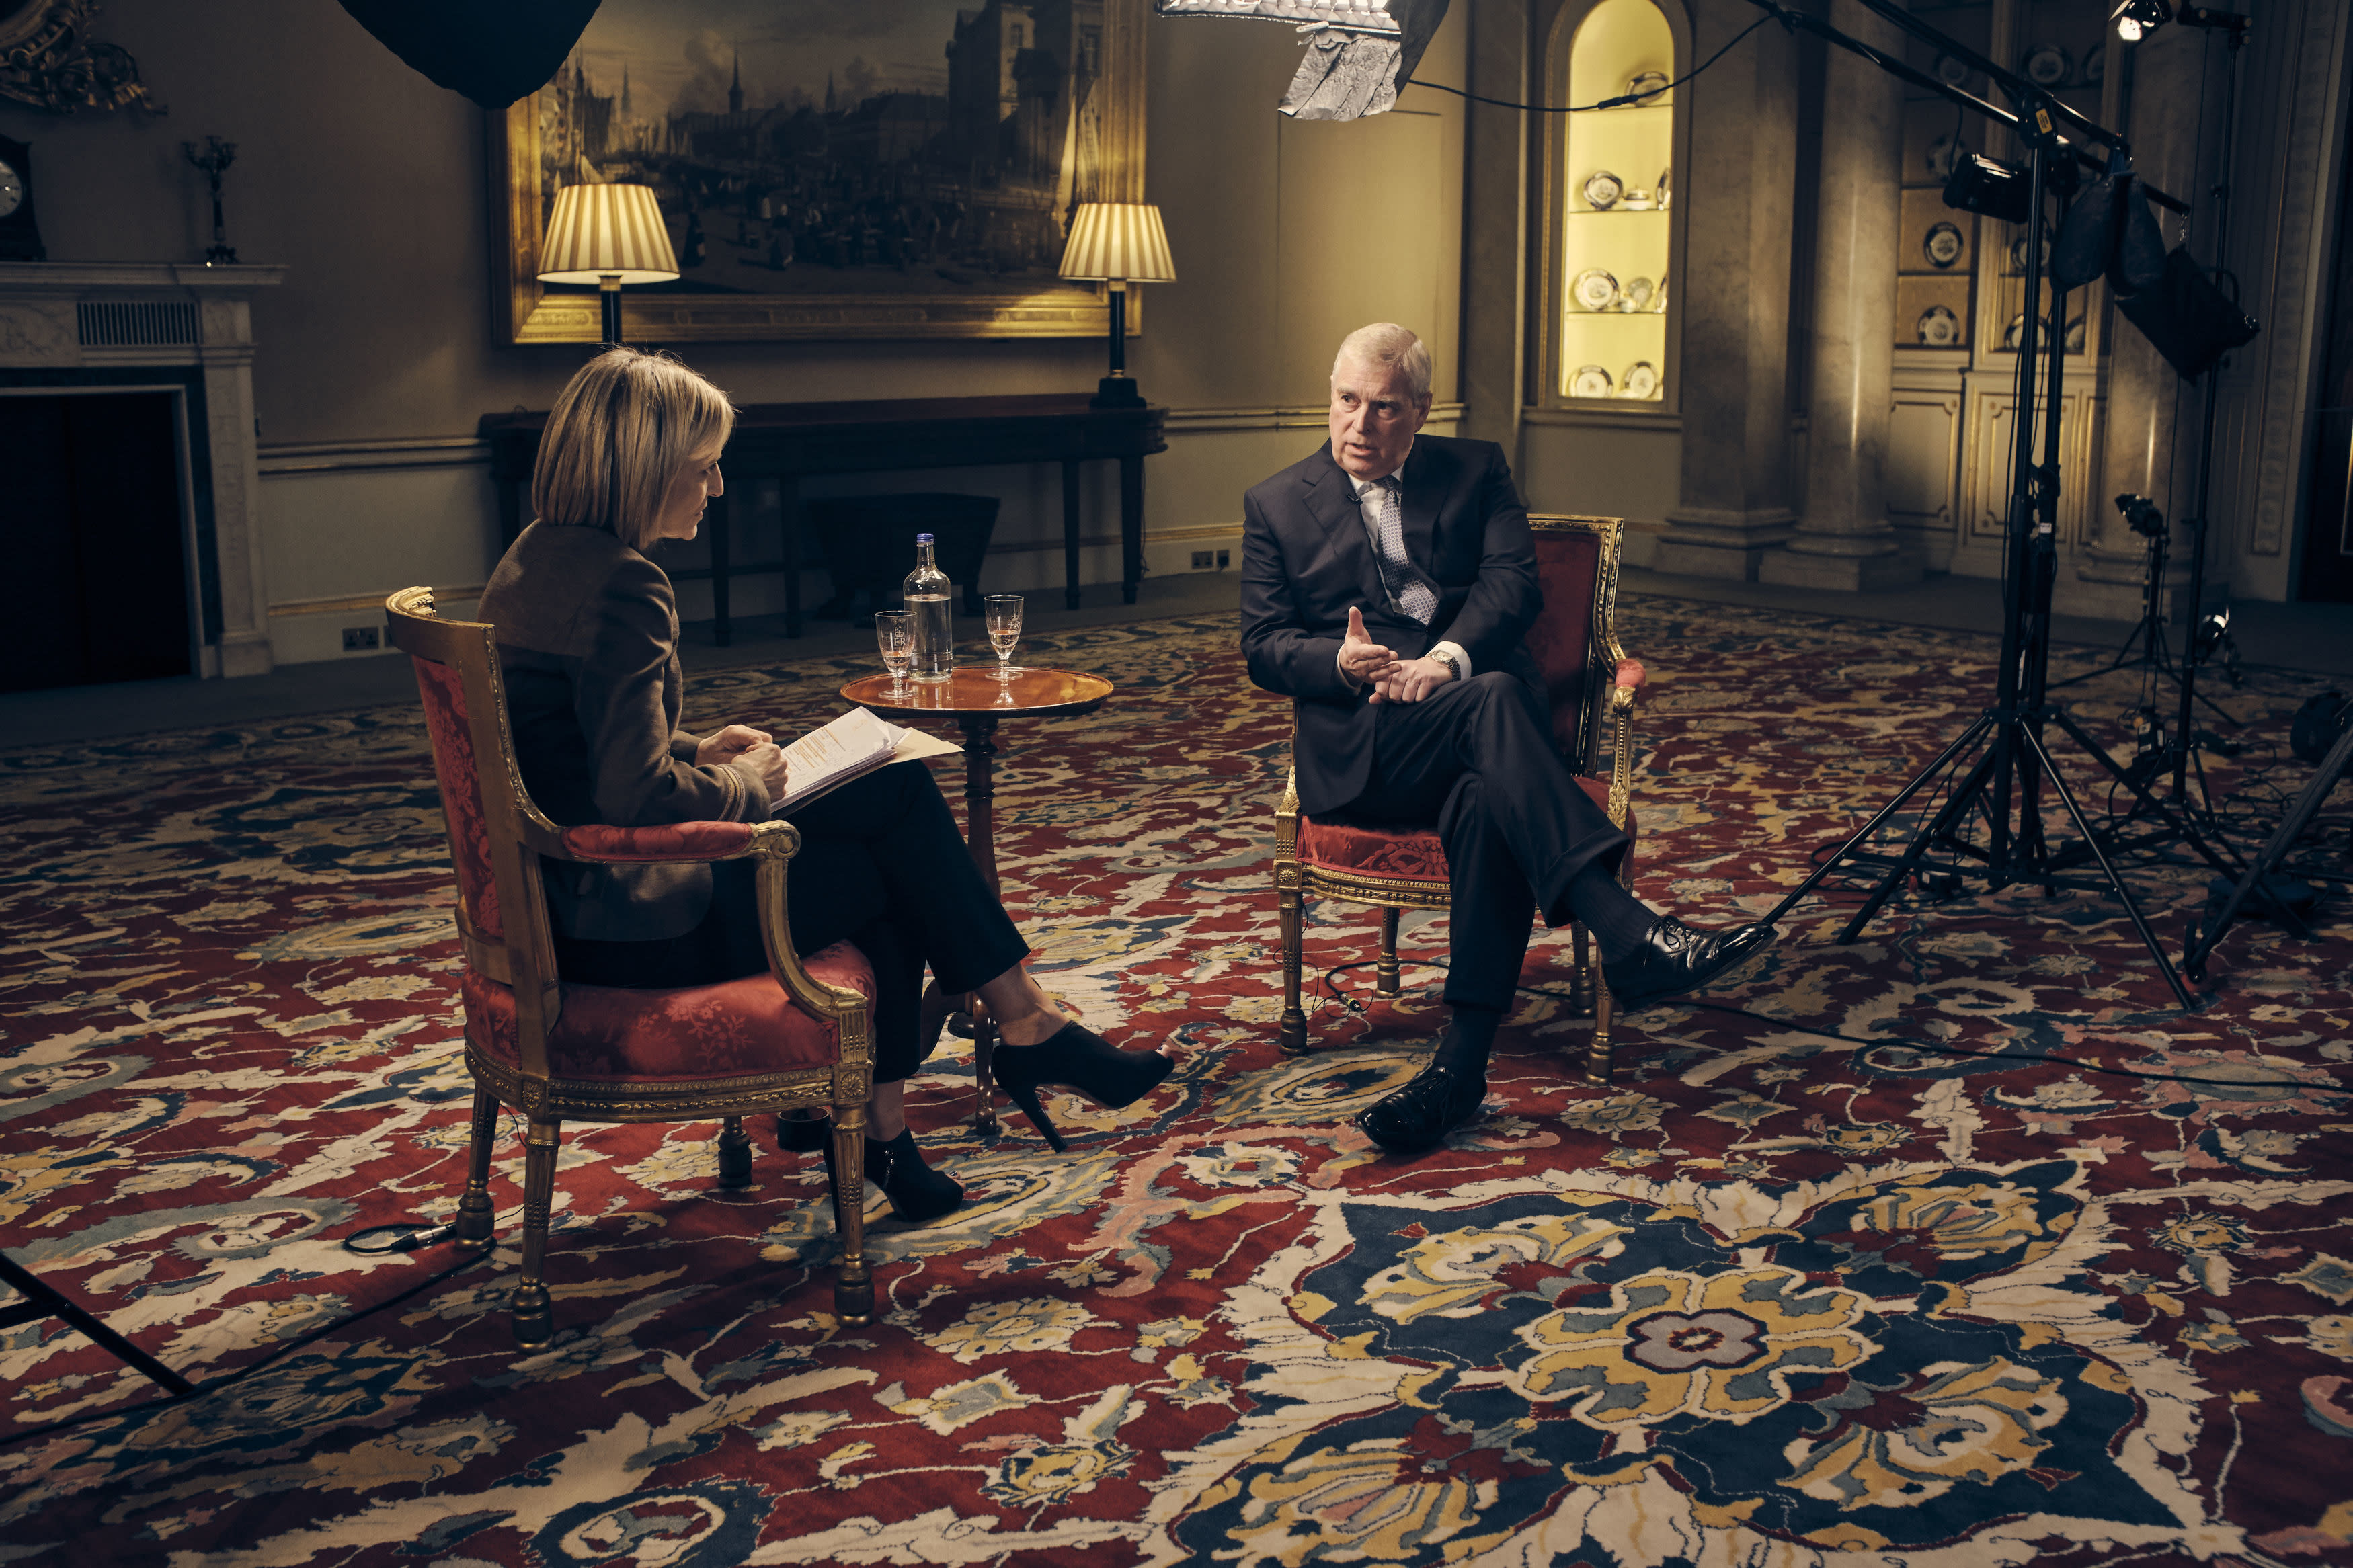 York, speaking for the first time about his links to Jeffrey Epstein in an interview with BBC Newsnight's Emily Maitlis. The Queen gave her approval for